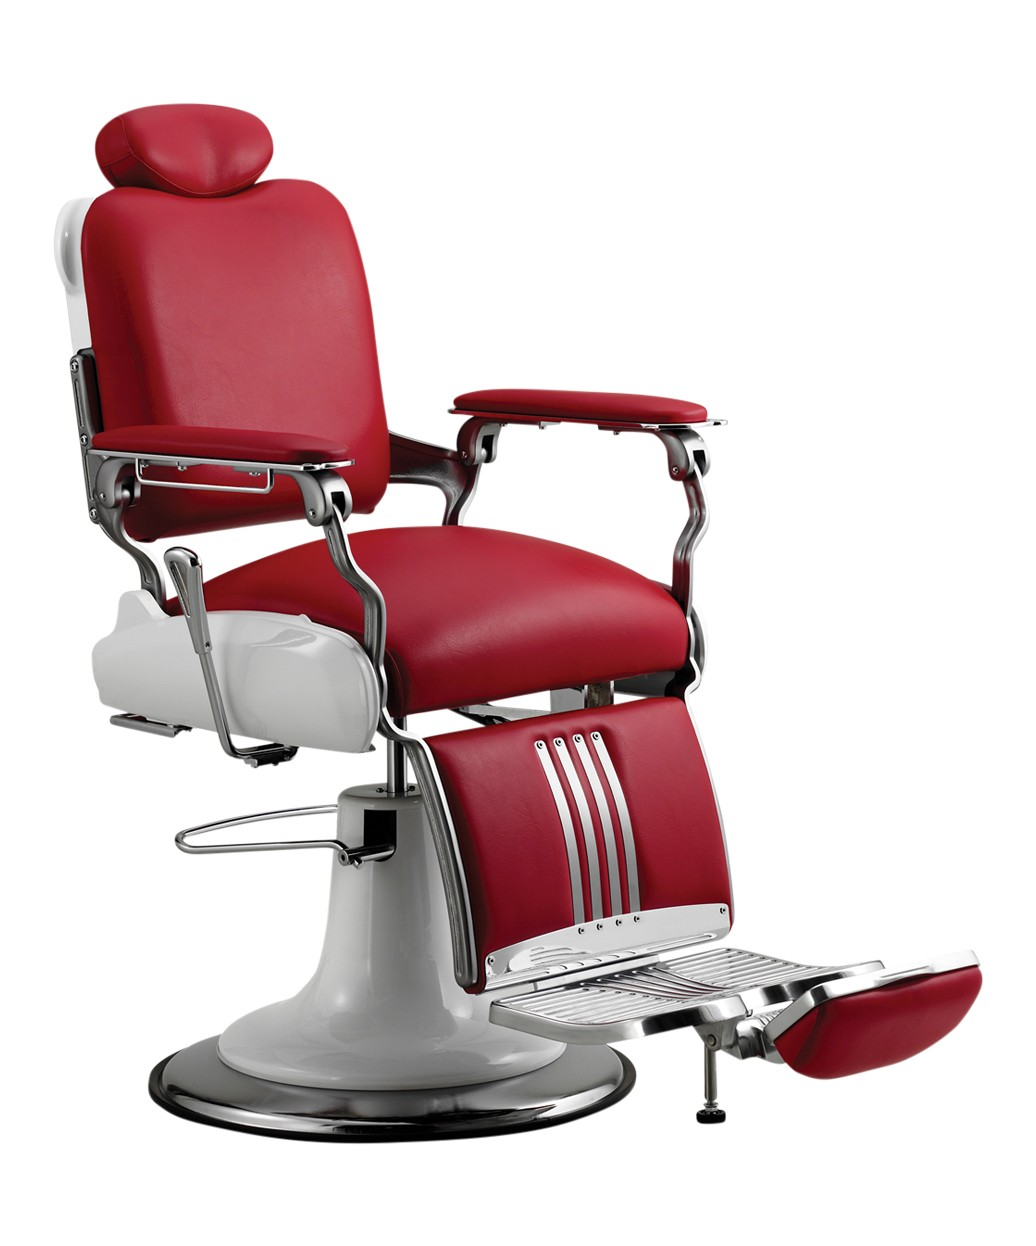 belmont barber chair parts grey dining chairs uk takara koken legacy red and black